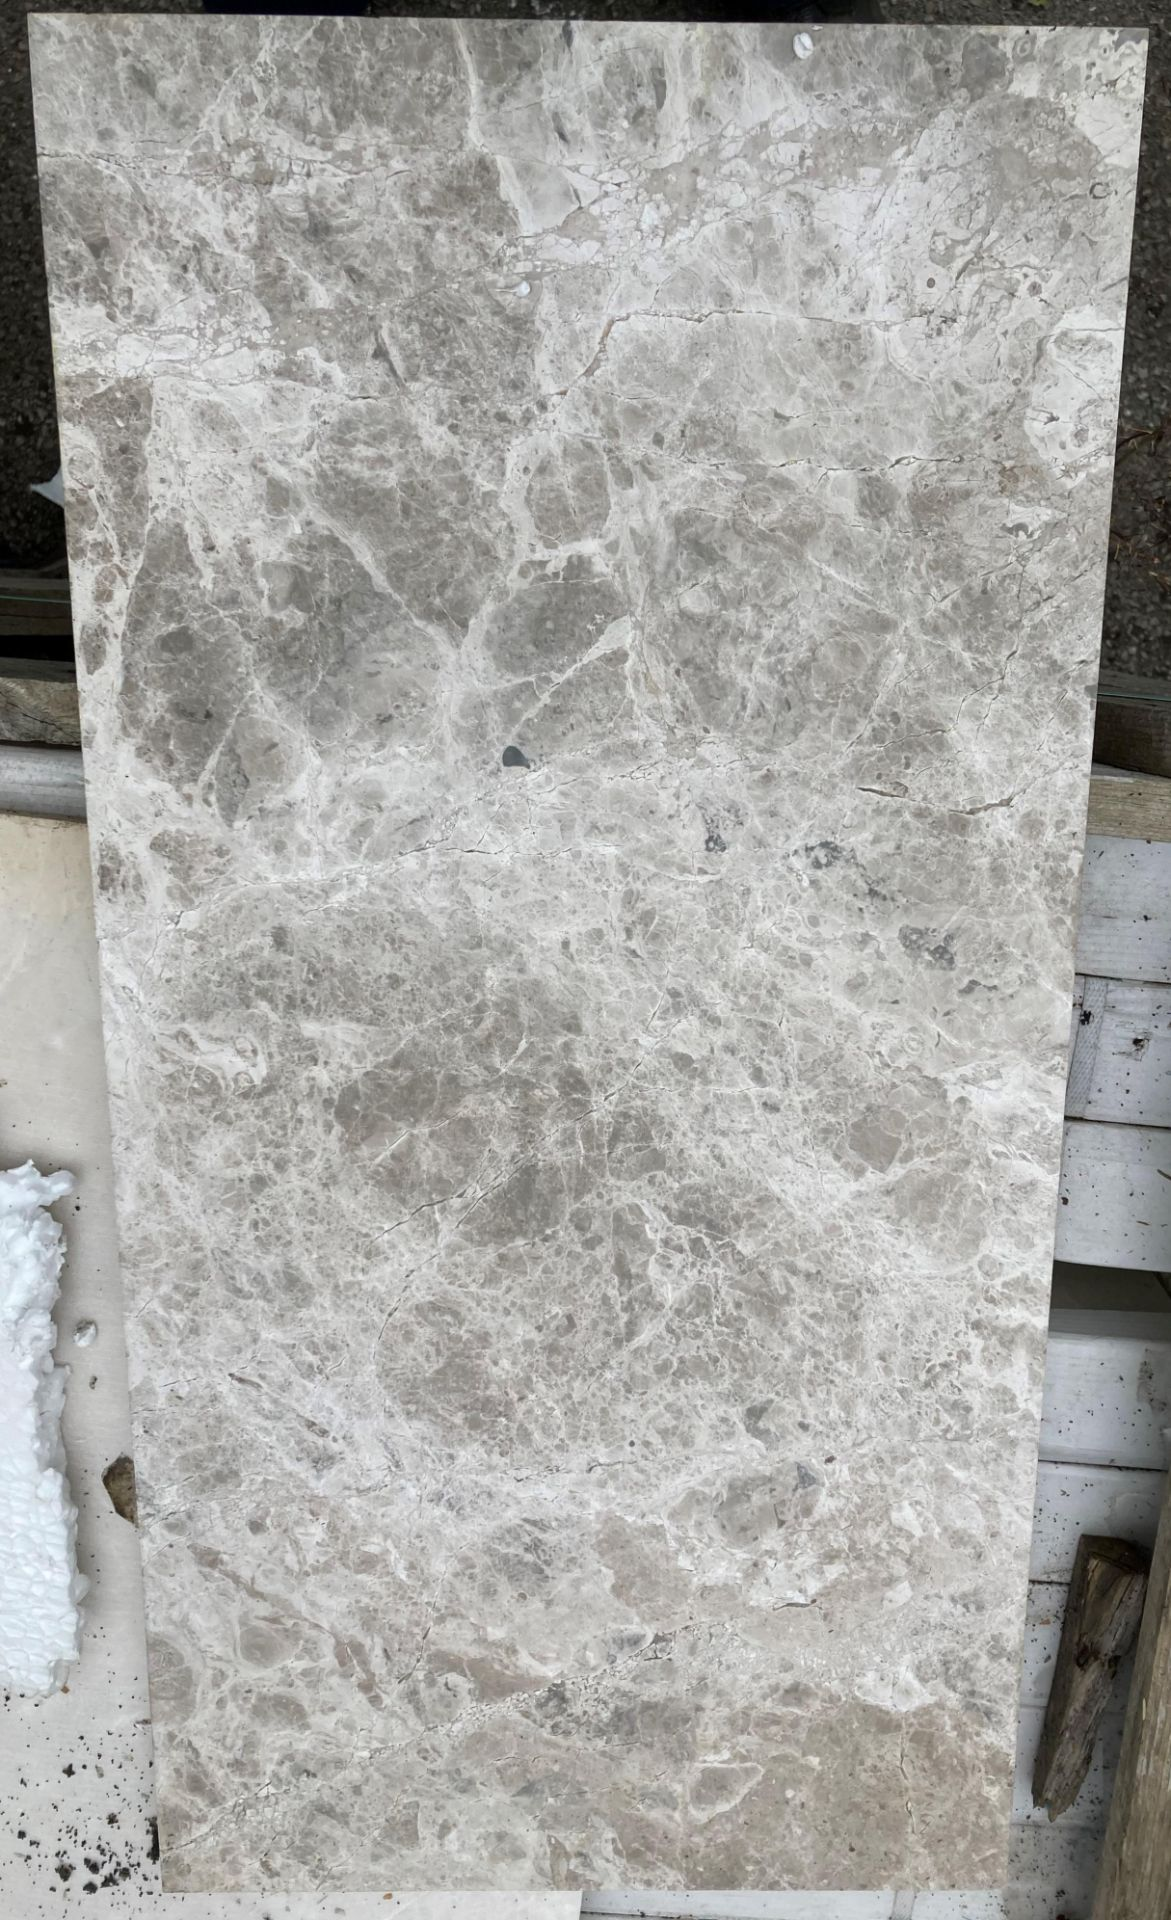 40 x packs of 4 marble tiles in Silver Emperador - 30 x 60 x 1.